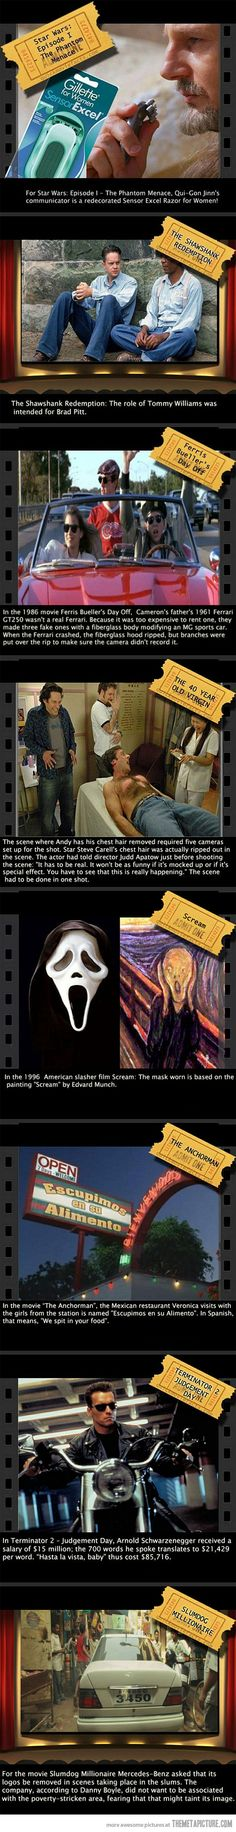 Awesome movie facts.